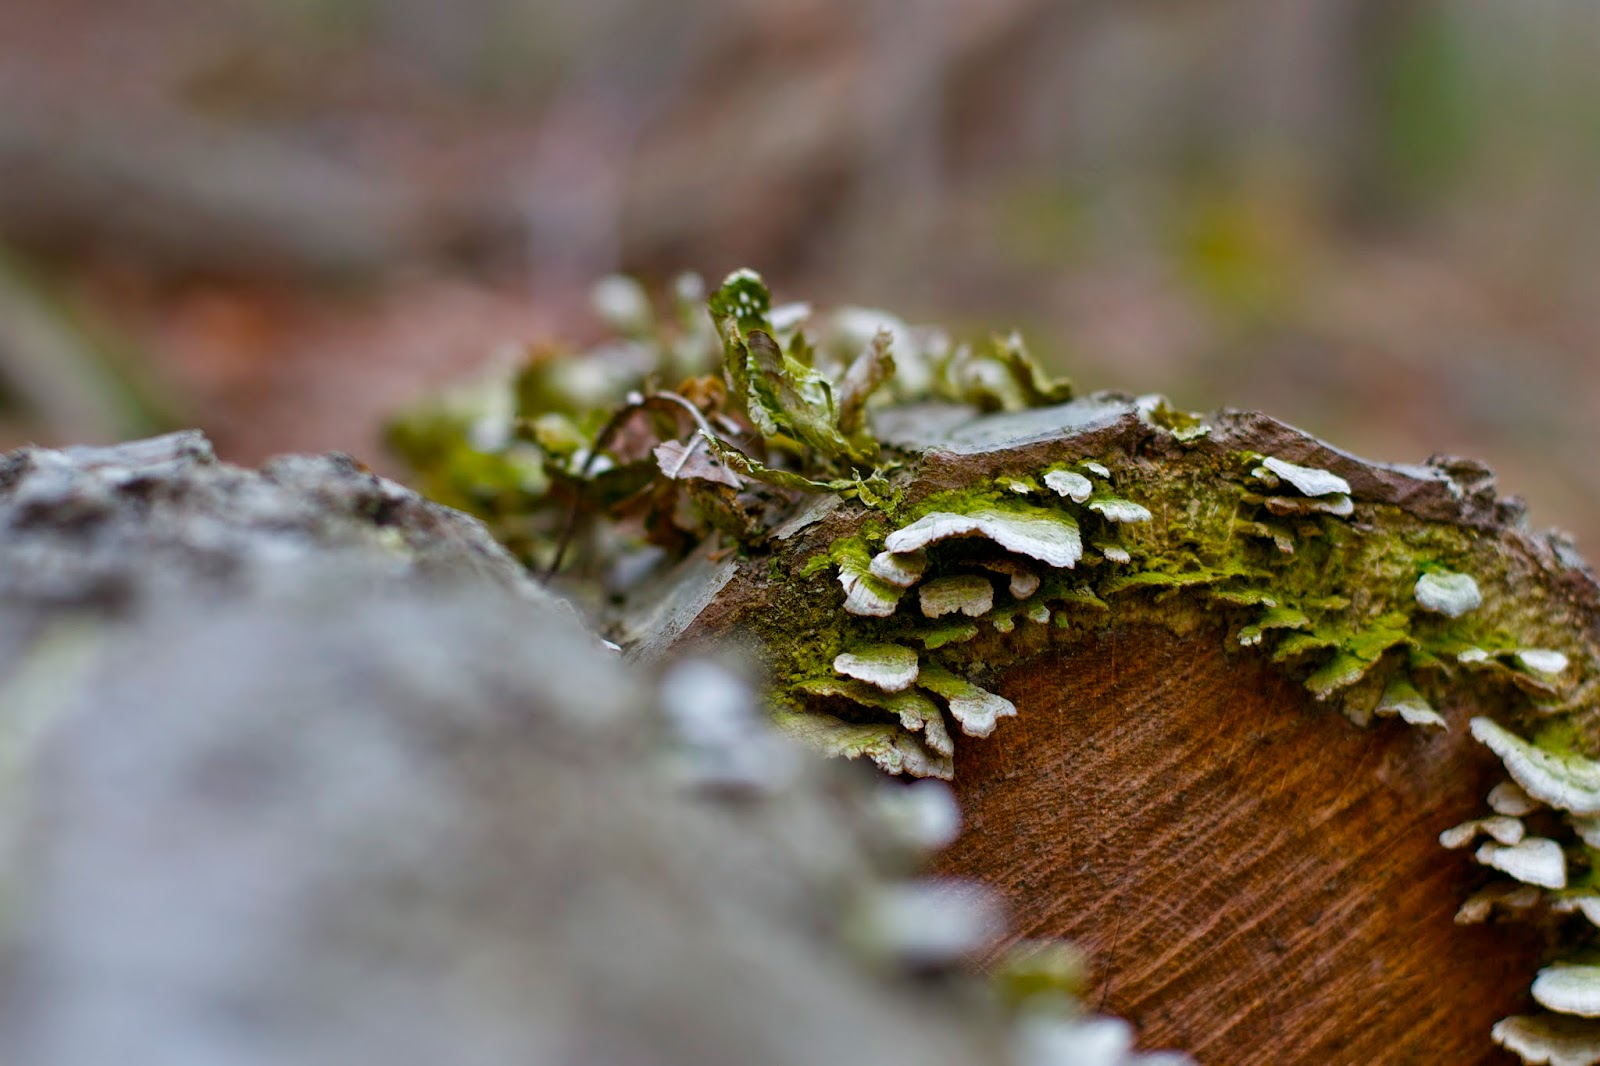 More turkey tails, past their prime and with moss starting to take over, on a fallen log.